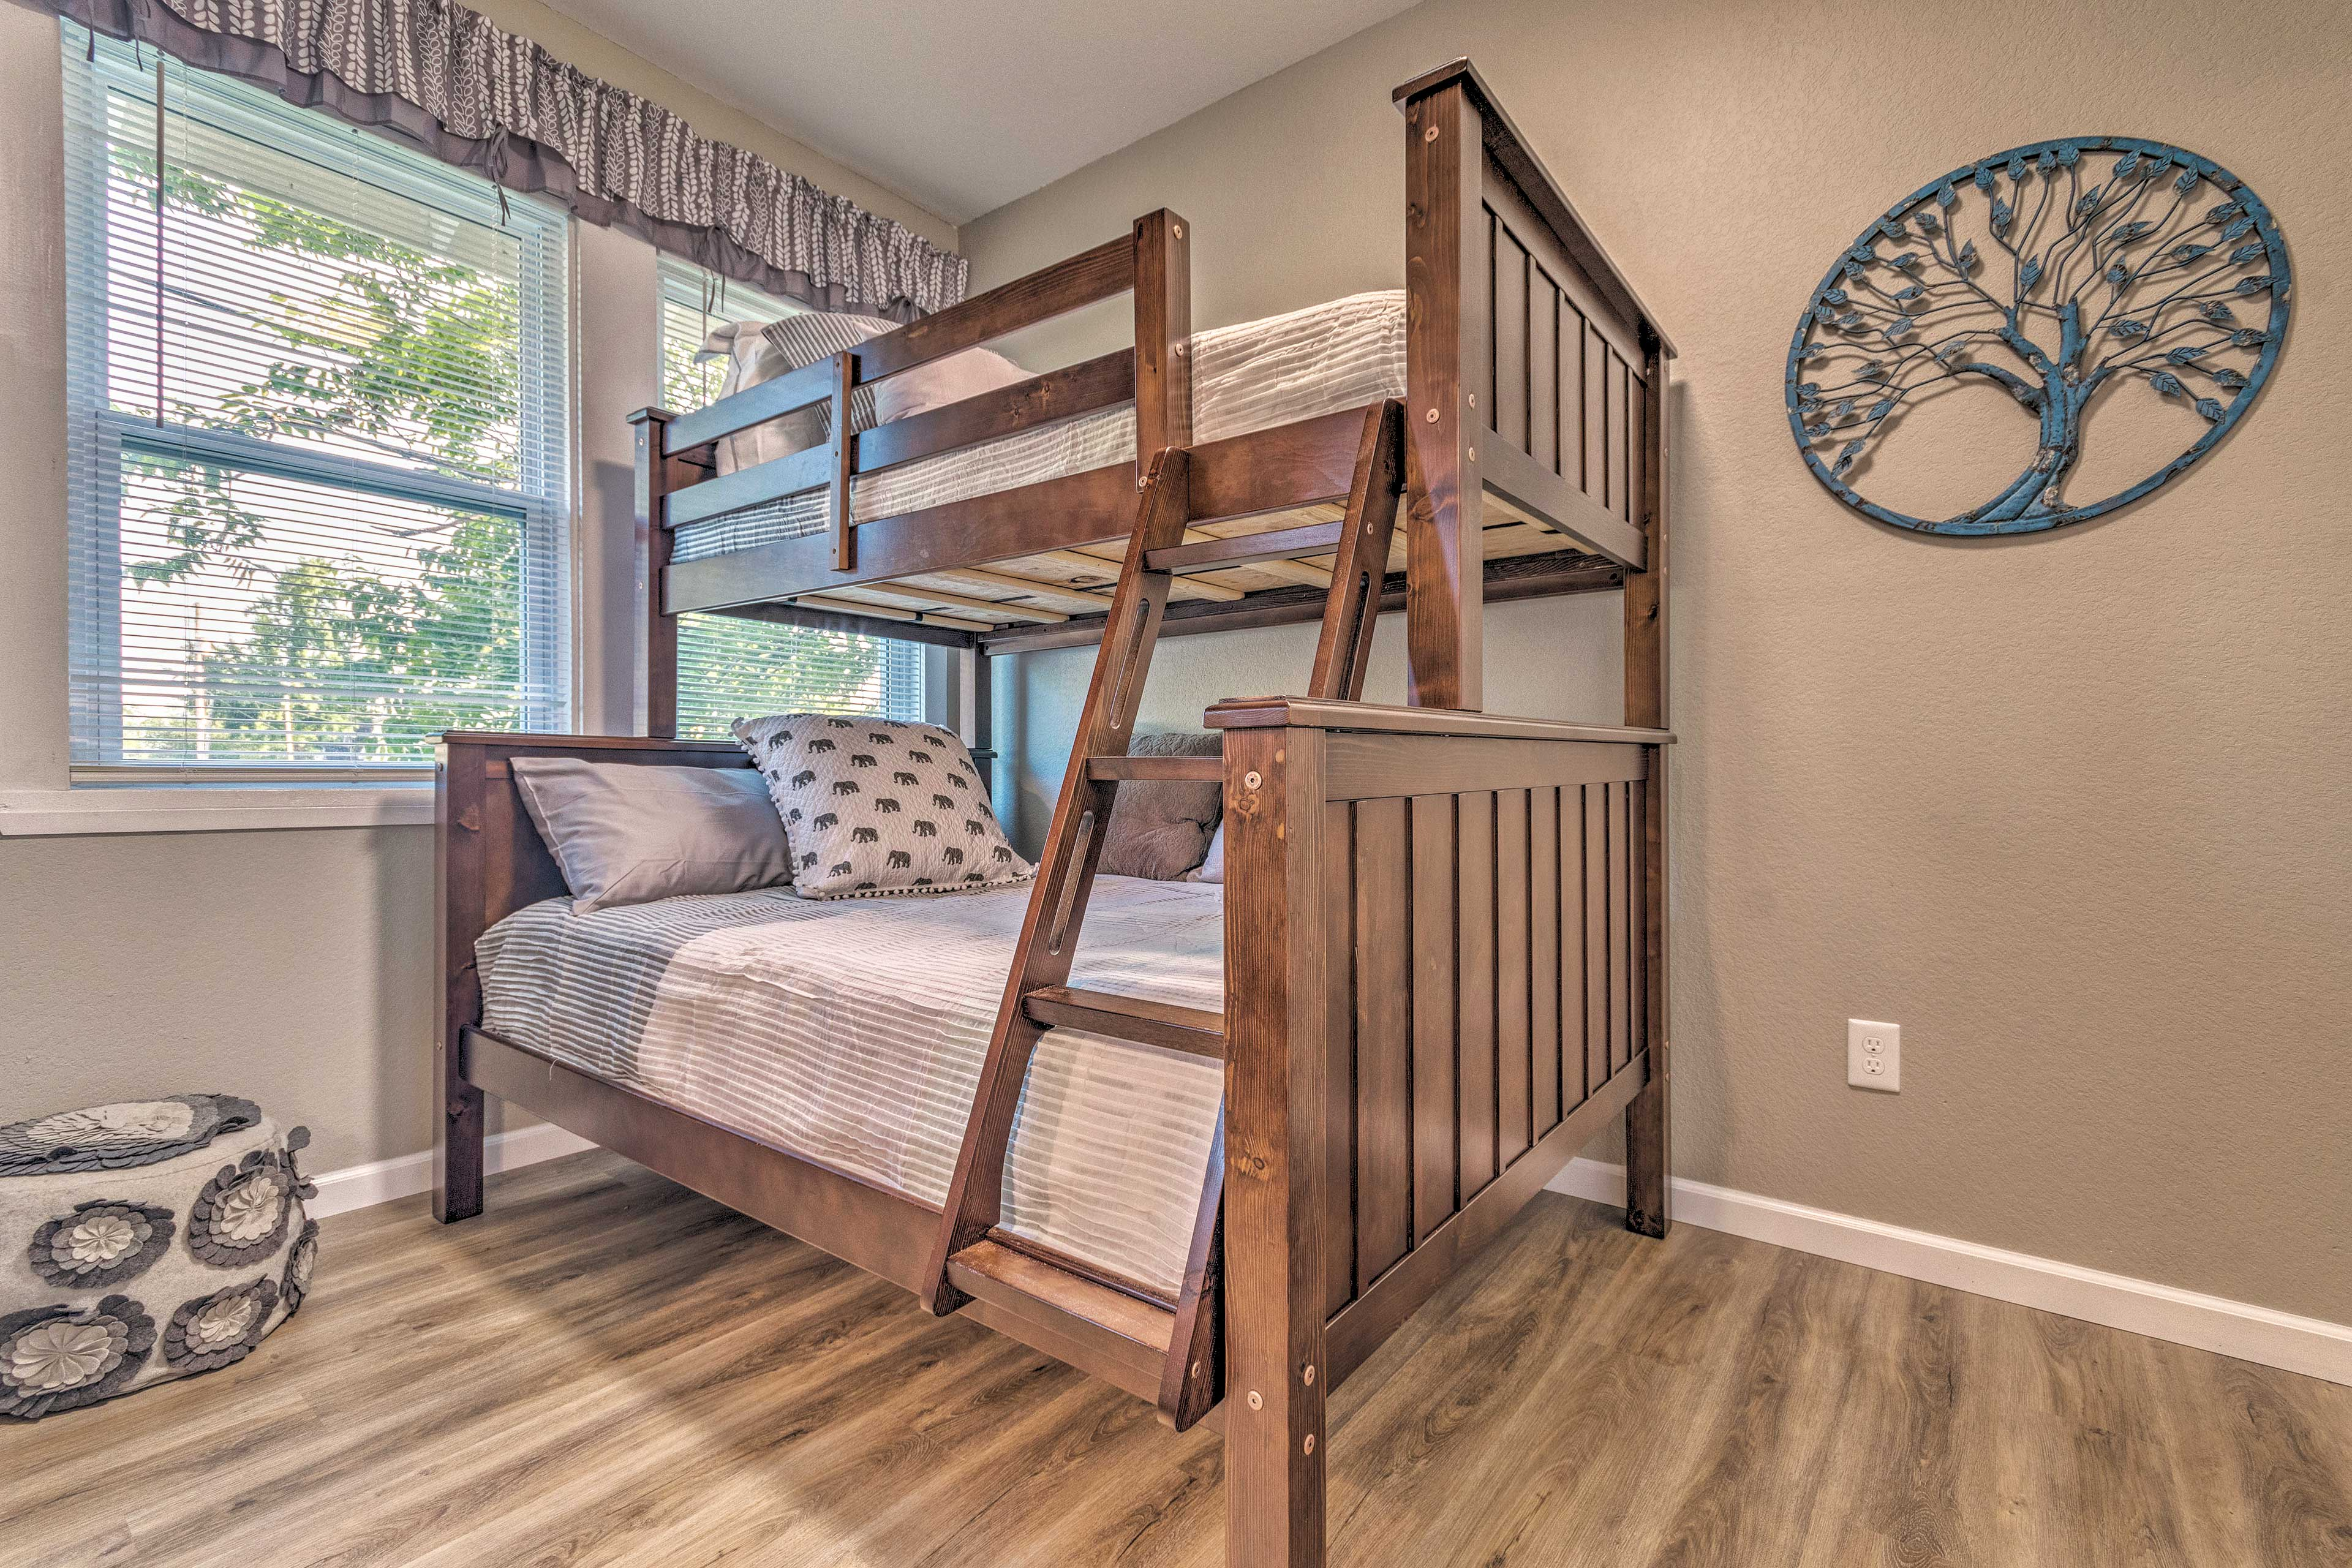 A twin-over-full bunk bed is great for kids.